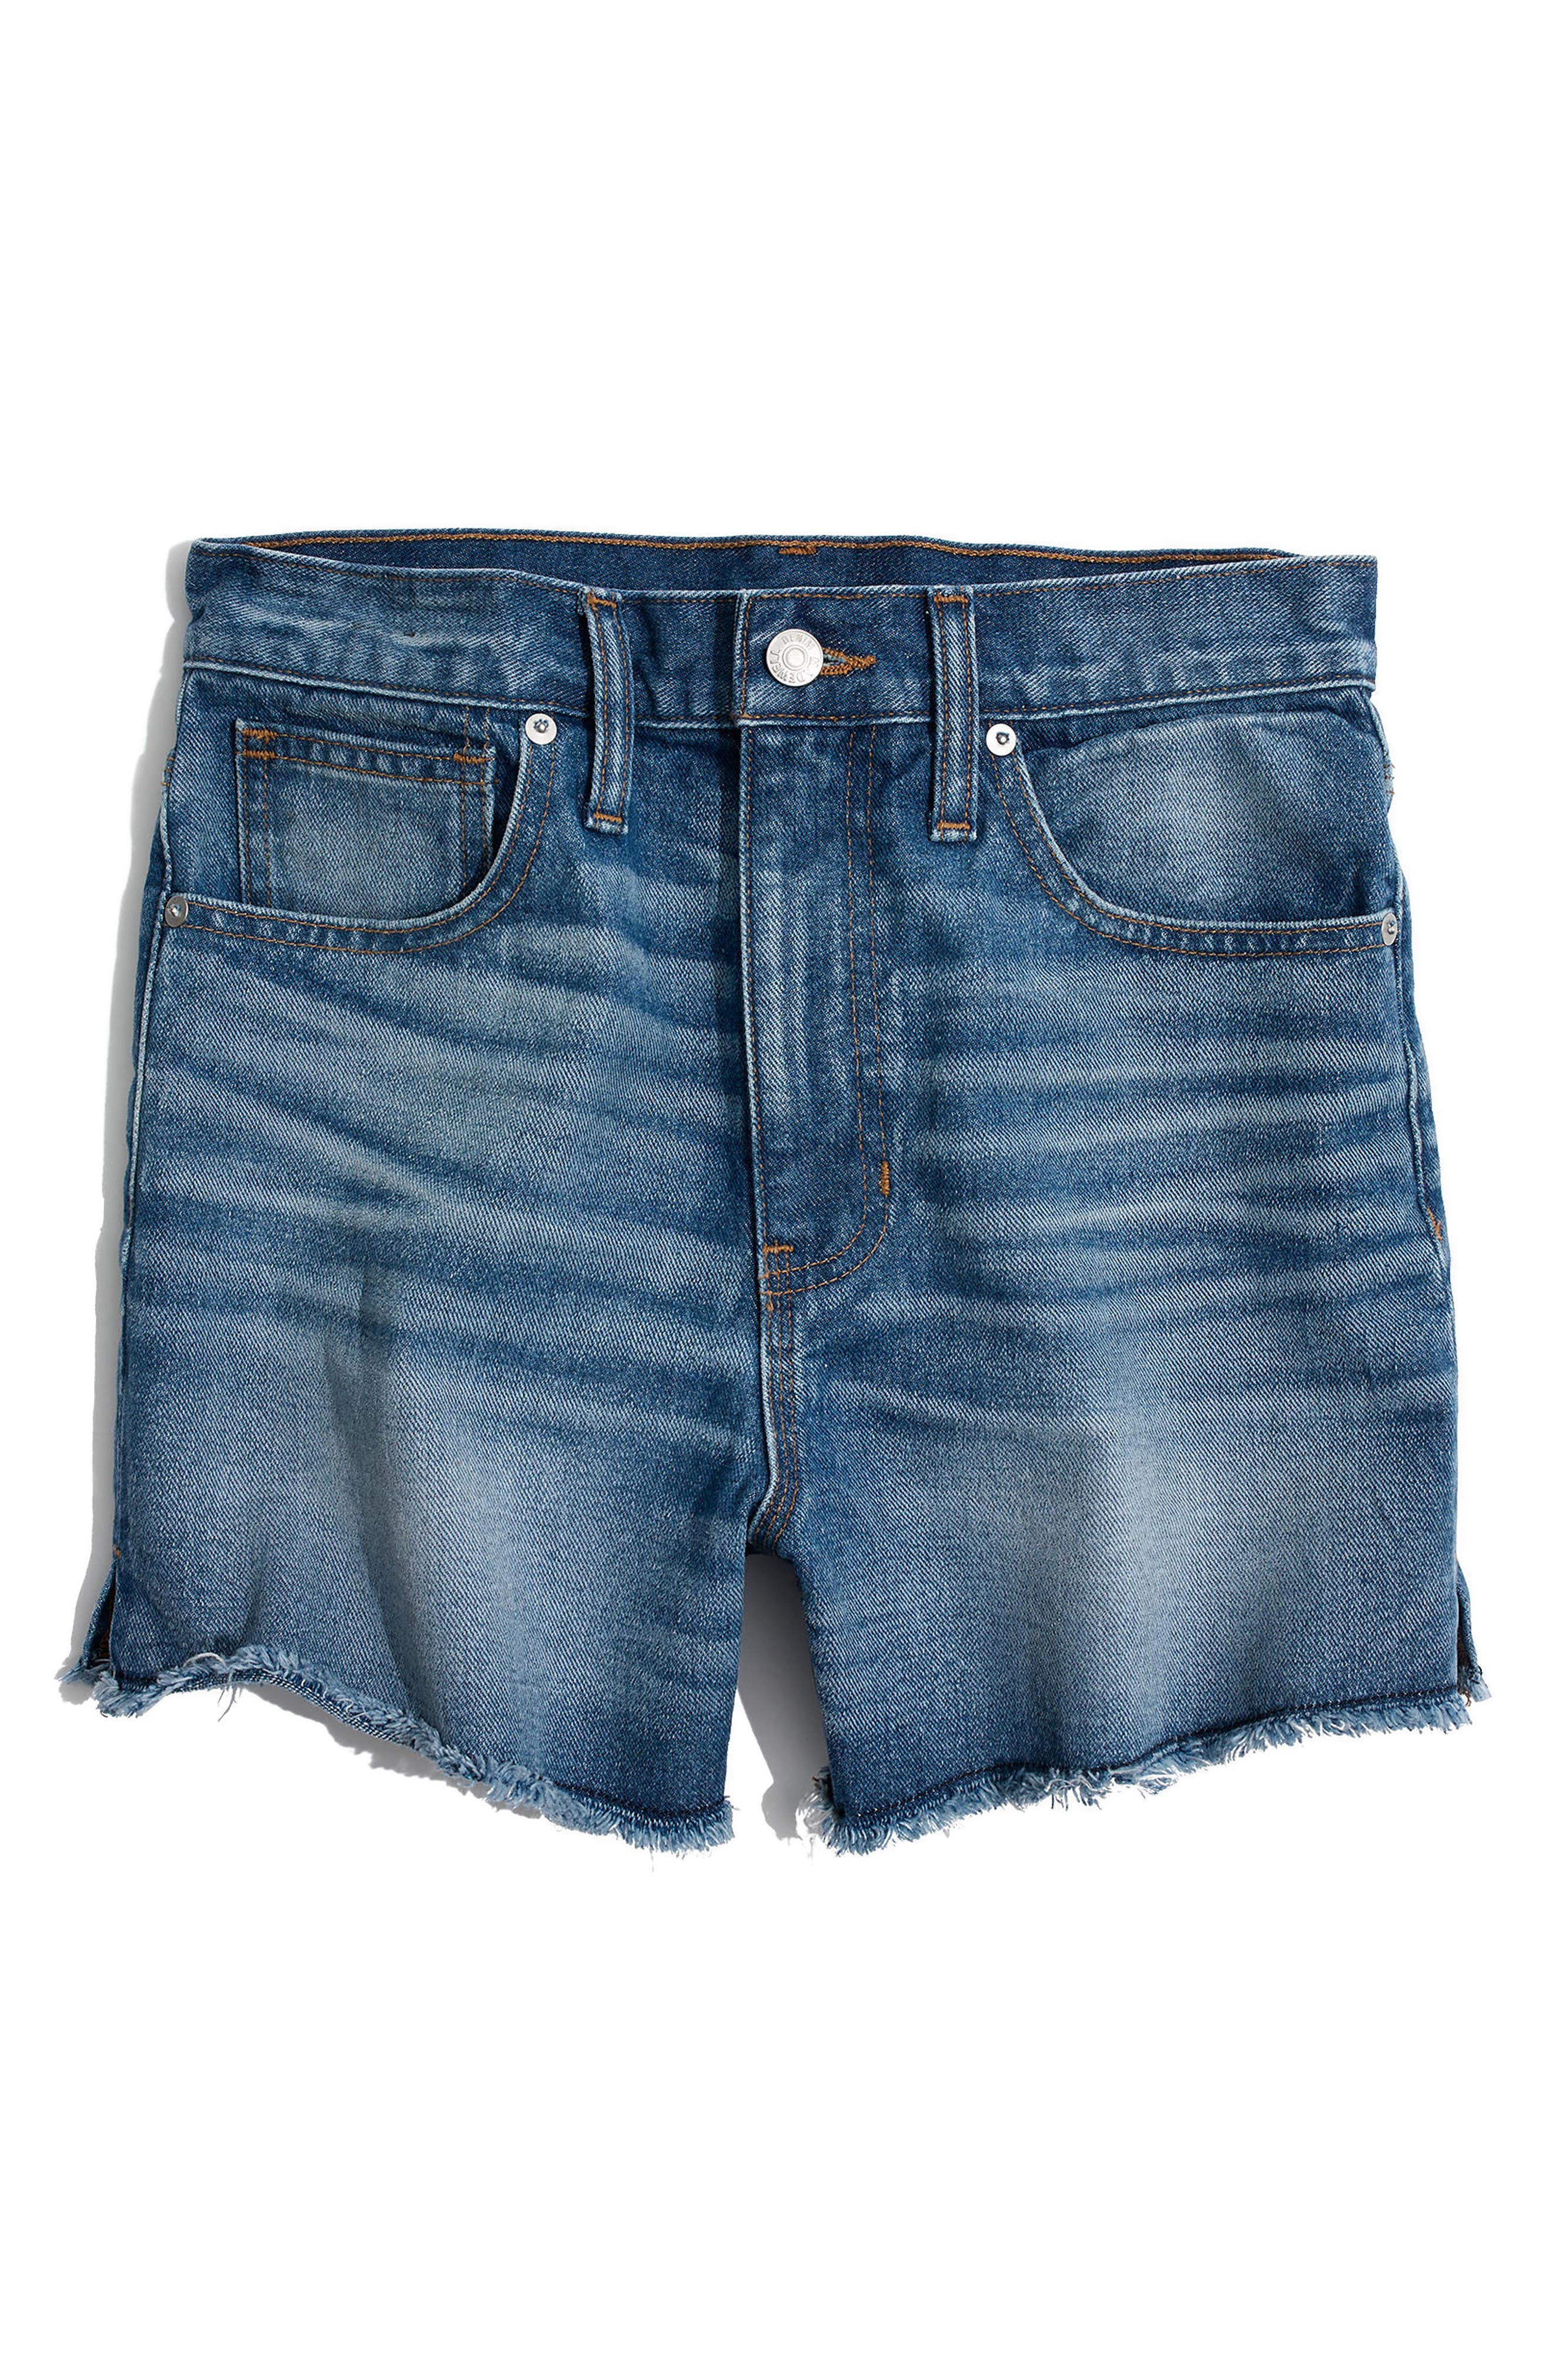 MADEWELL, The Perfect Jean Shorts, Alternate thumbnail 3, color, BUTLER